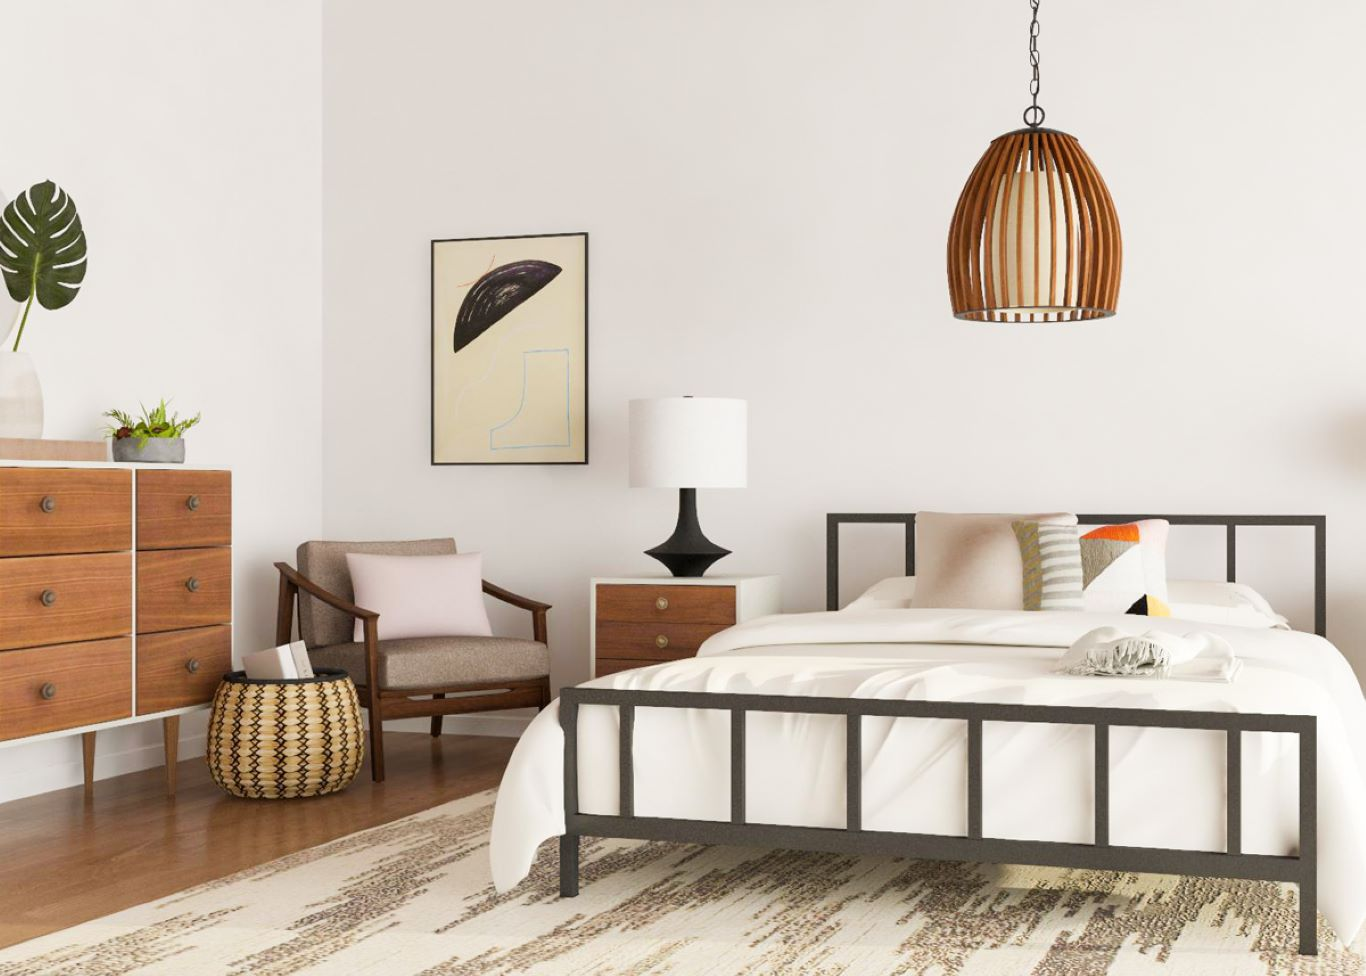 Metal framed bed atop carpet paired with wooden furniture and relevant lighting